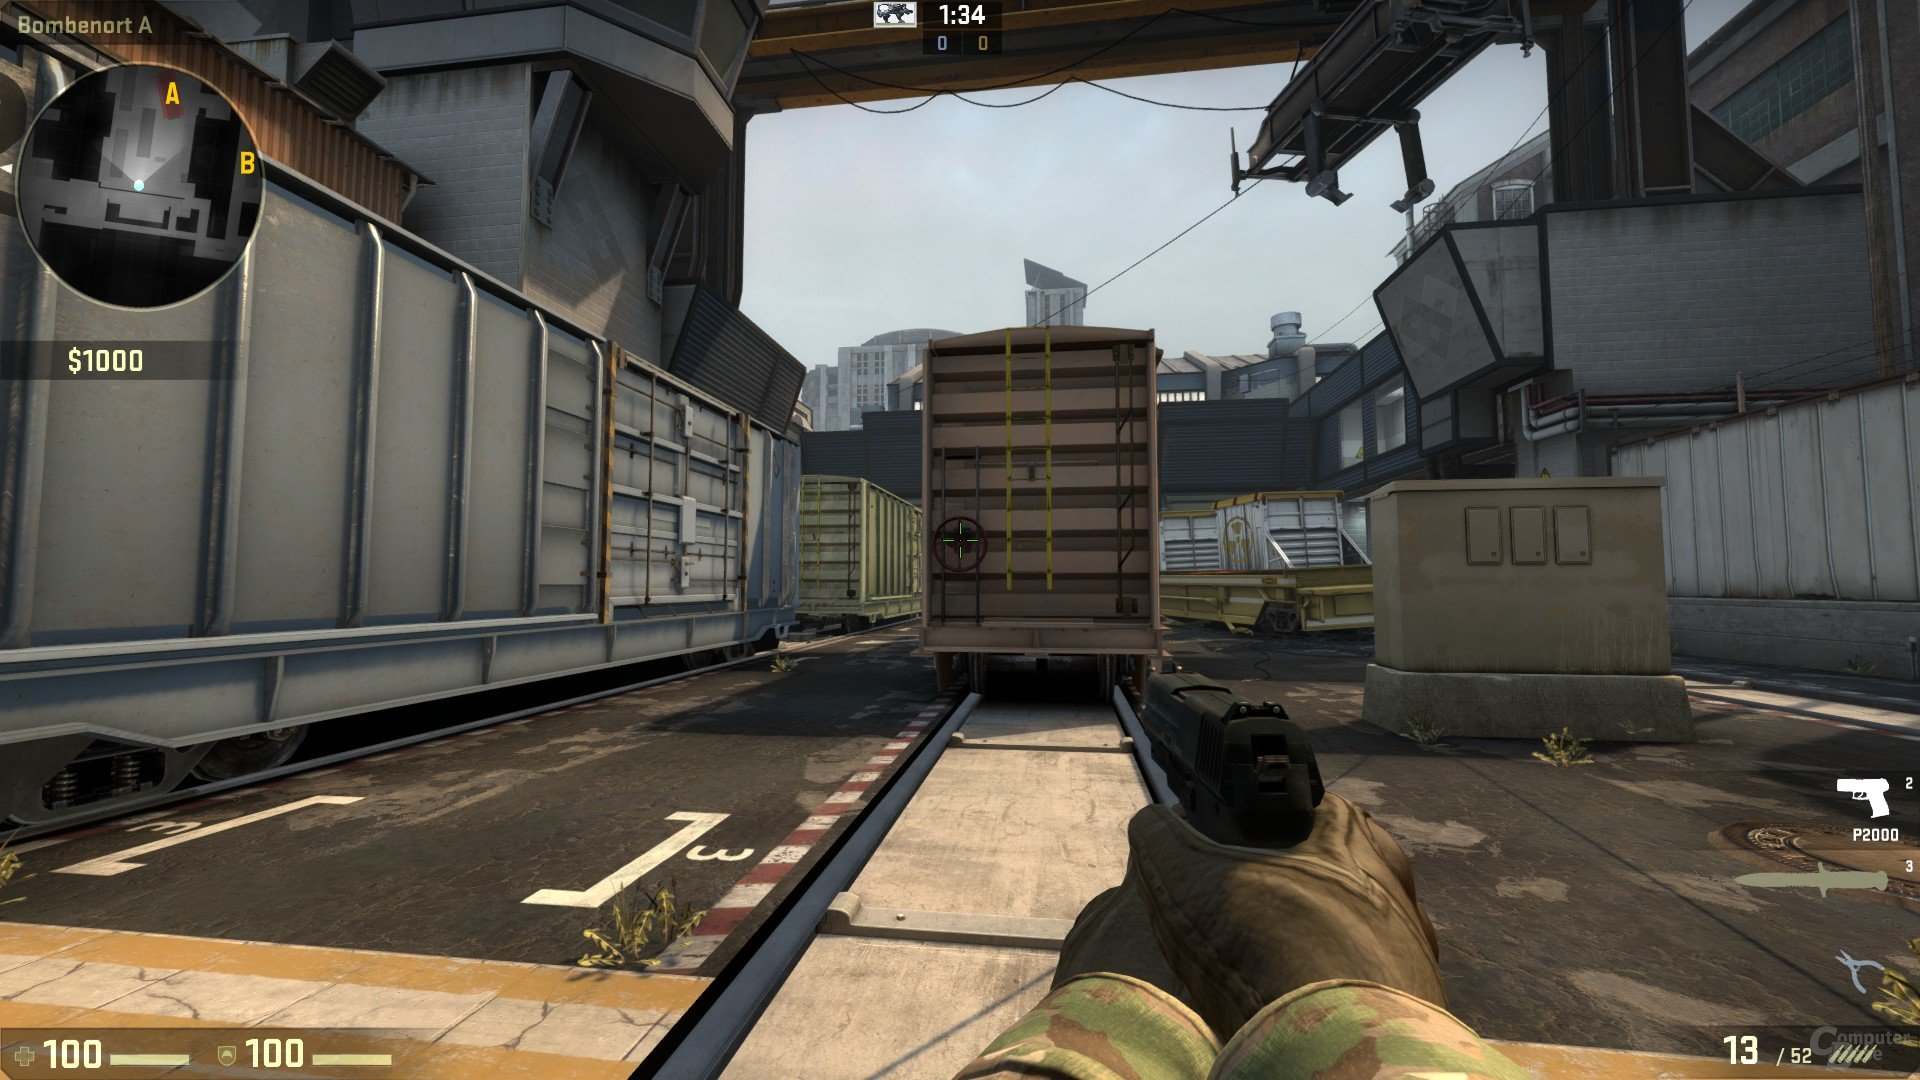 Counter-Strike GO - Windows